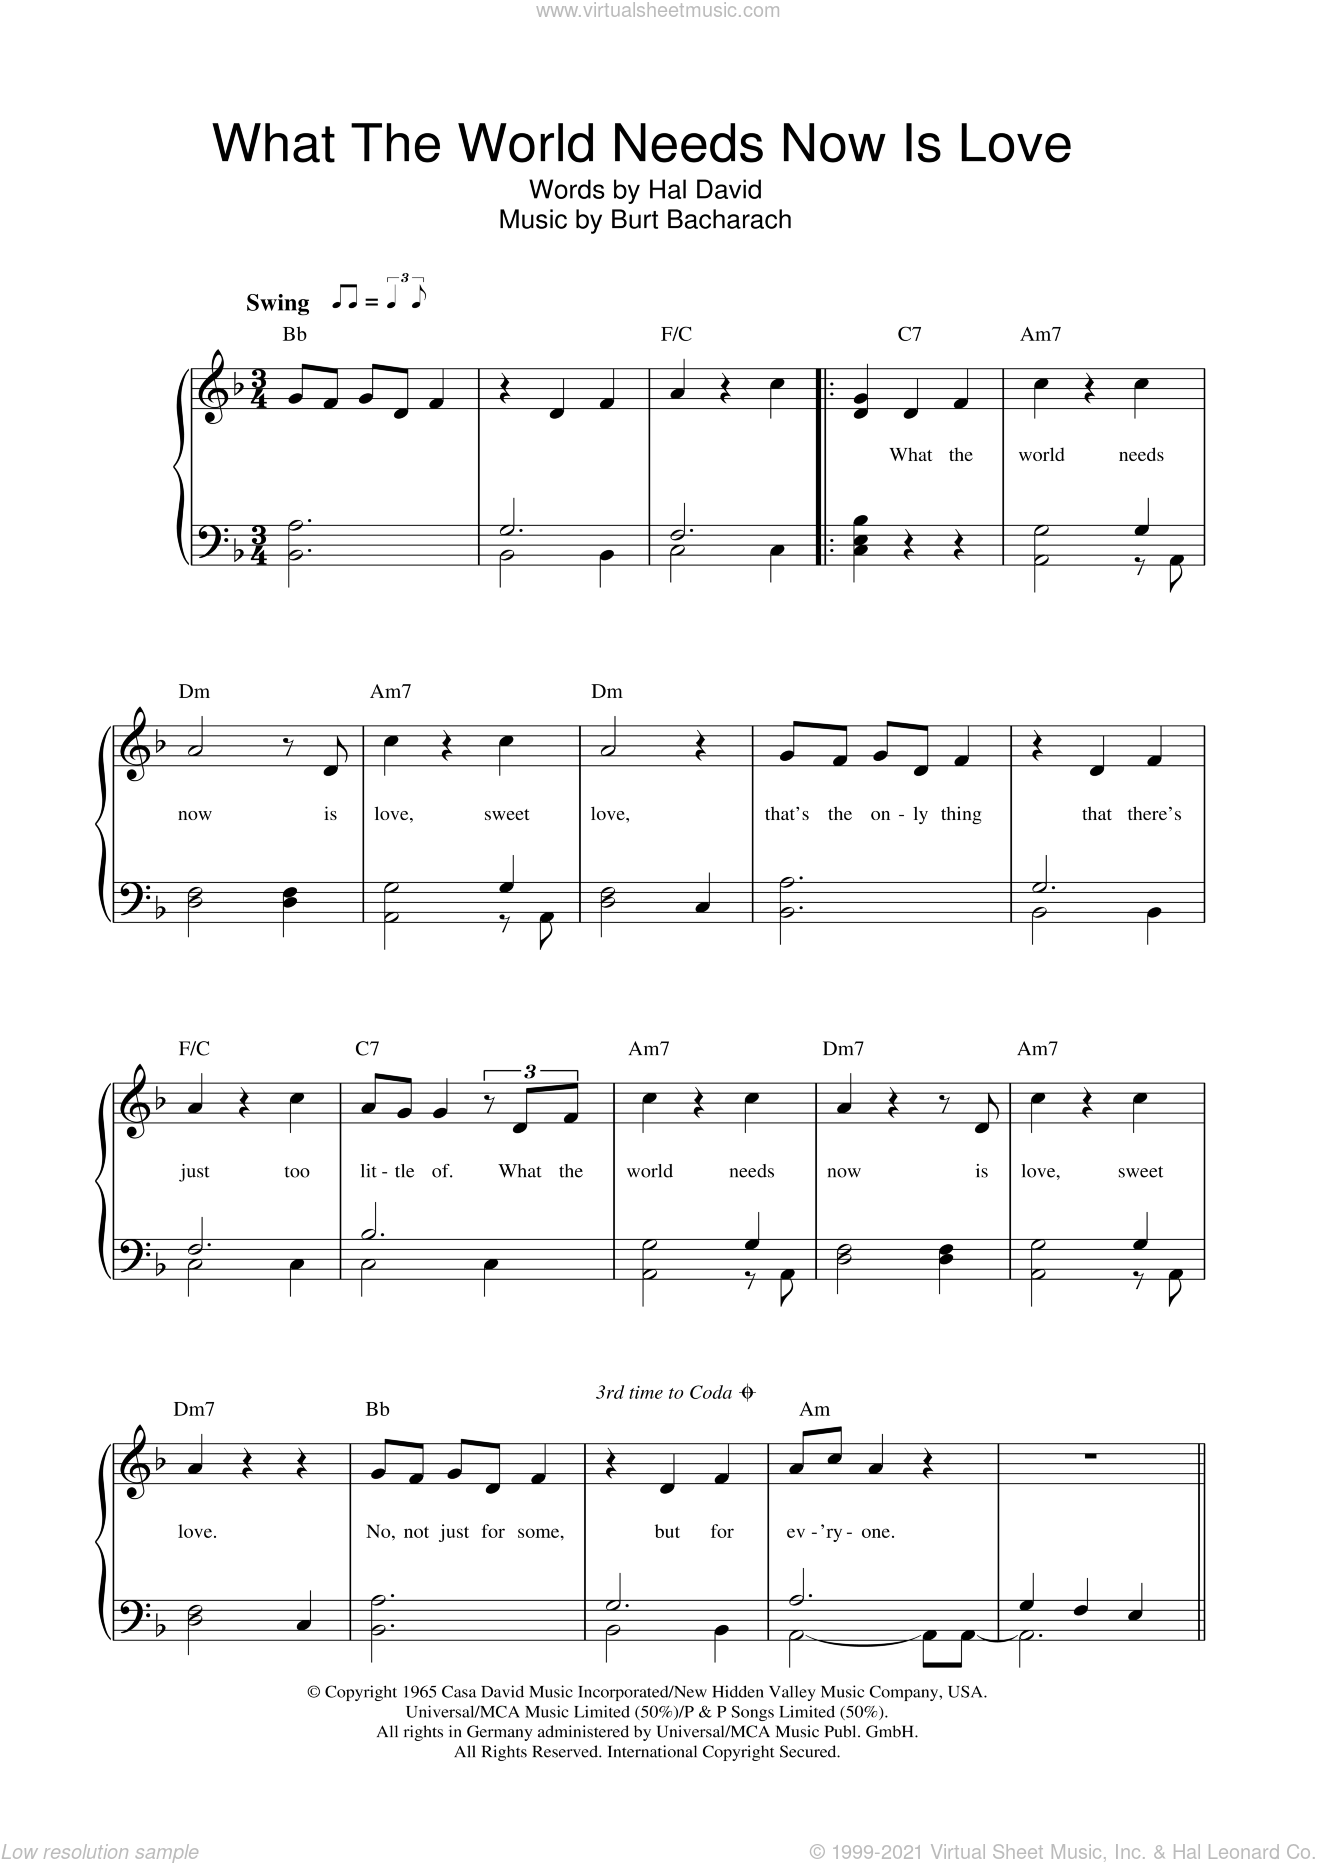 What The World Needs Now Is Love sheet music for piano solo by Bacharach & David, Burt Bacharach and Hal David. Score Image Preview.